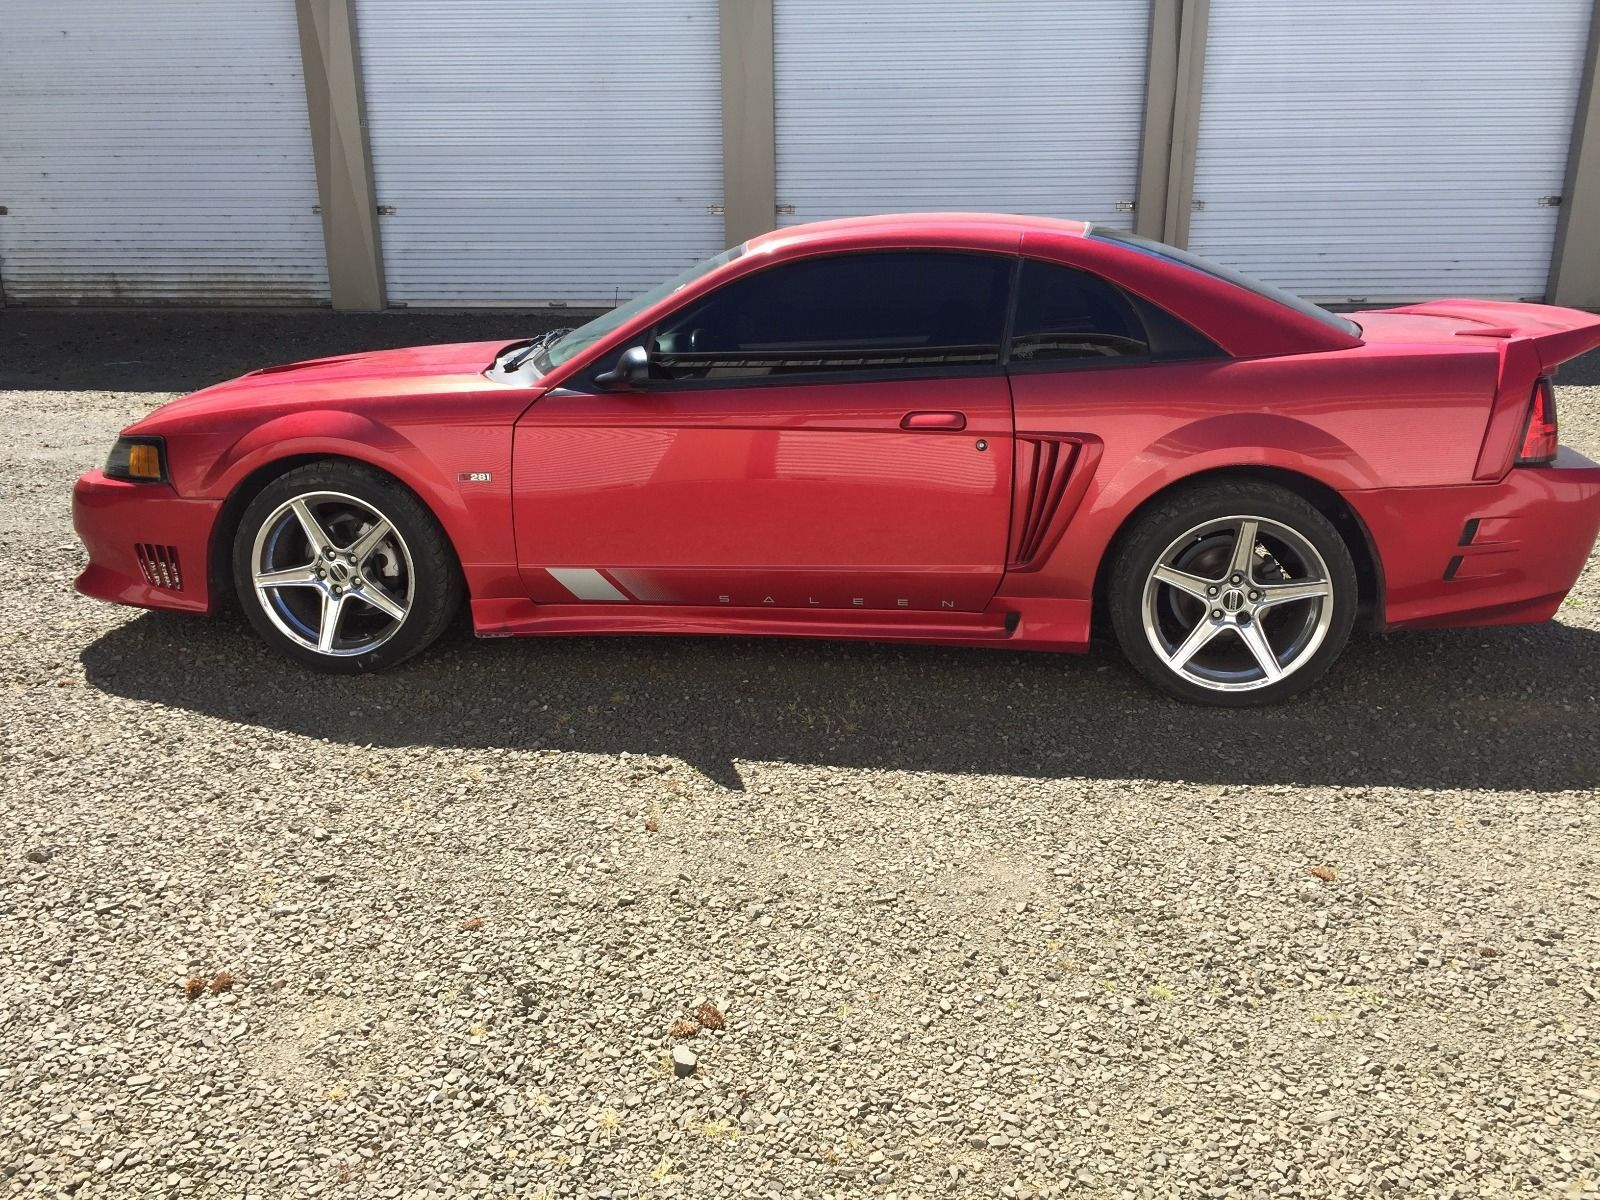 Ford mustang s281 2002 ford mustang saleen s 281 644 check more at http